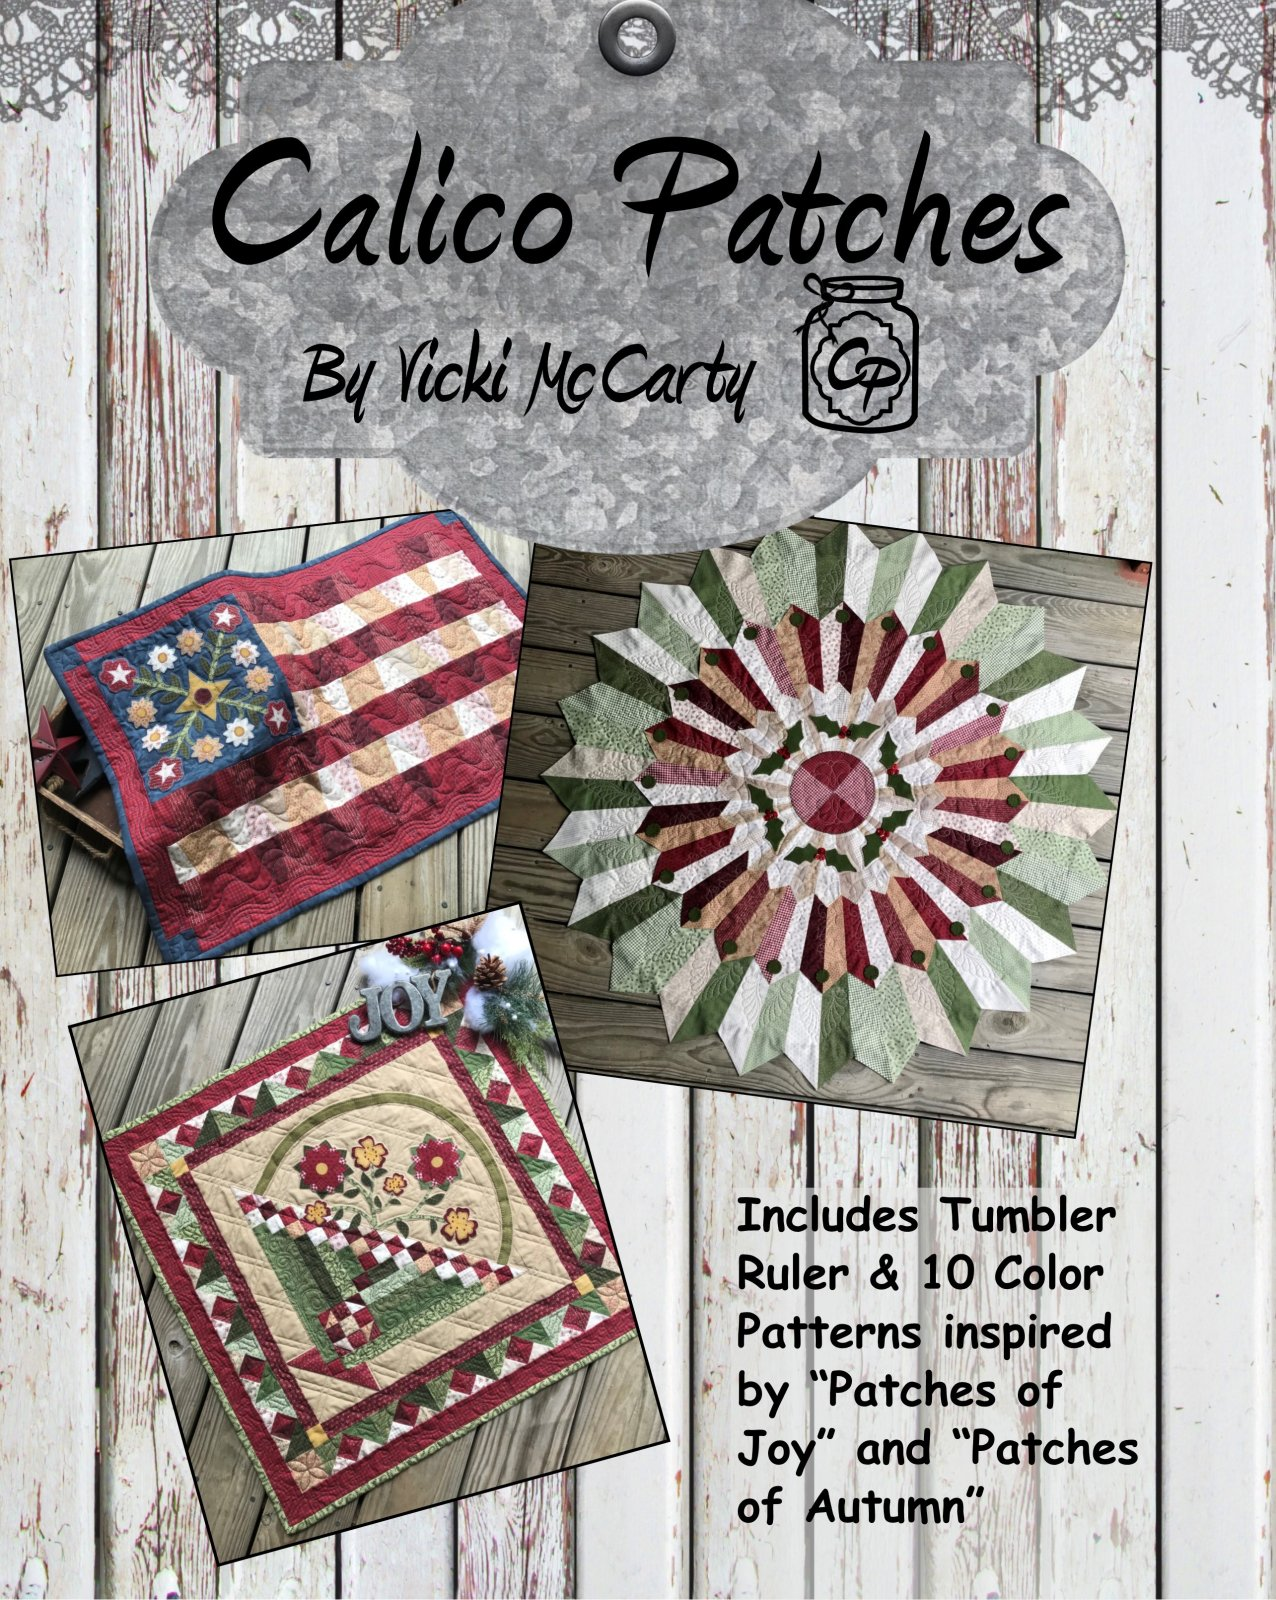 Calico Patches